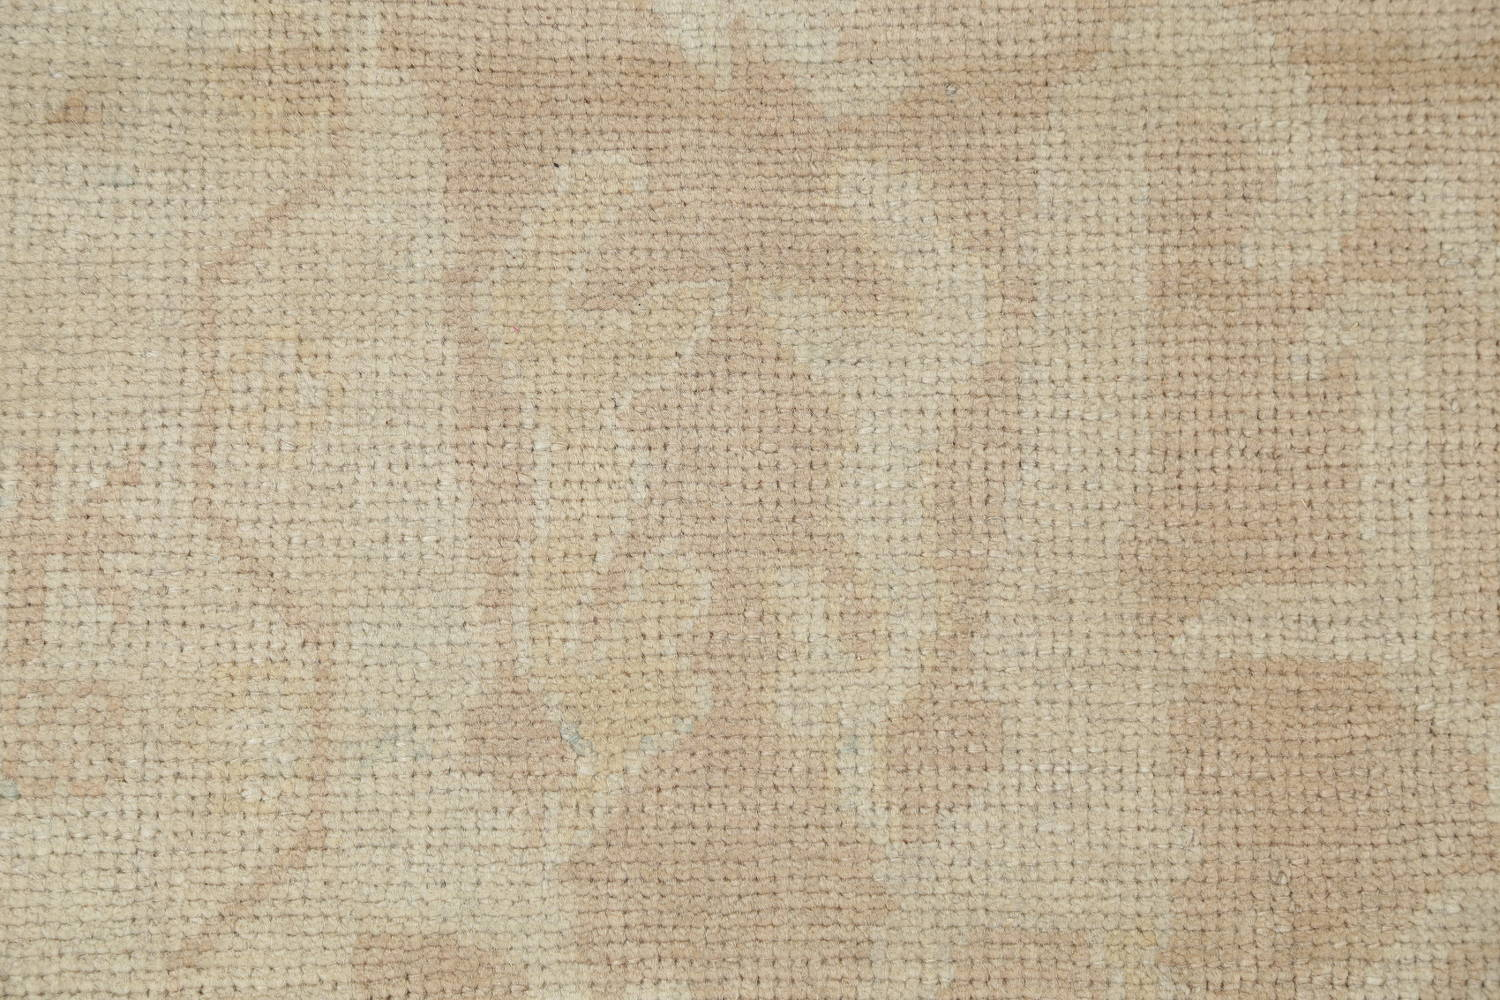 Vegetable Dye Muted Gold Oushak Turkish Hand-Knotted Runner Rug 7x16 image 7